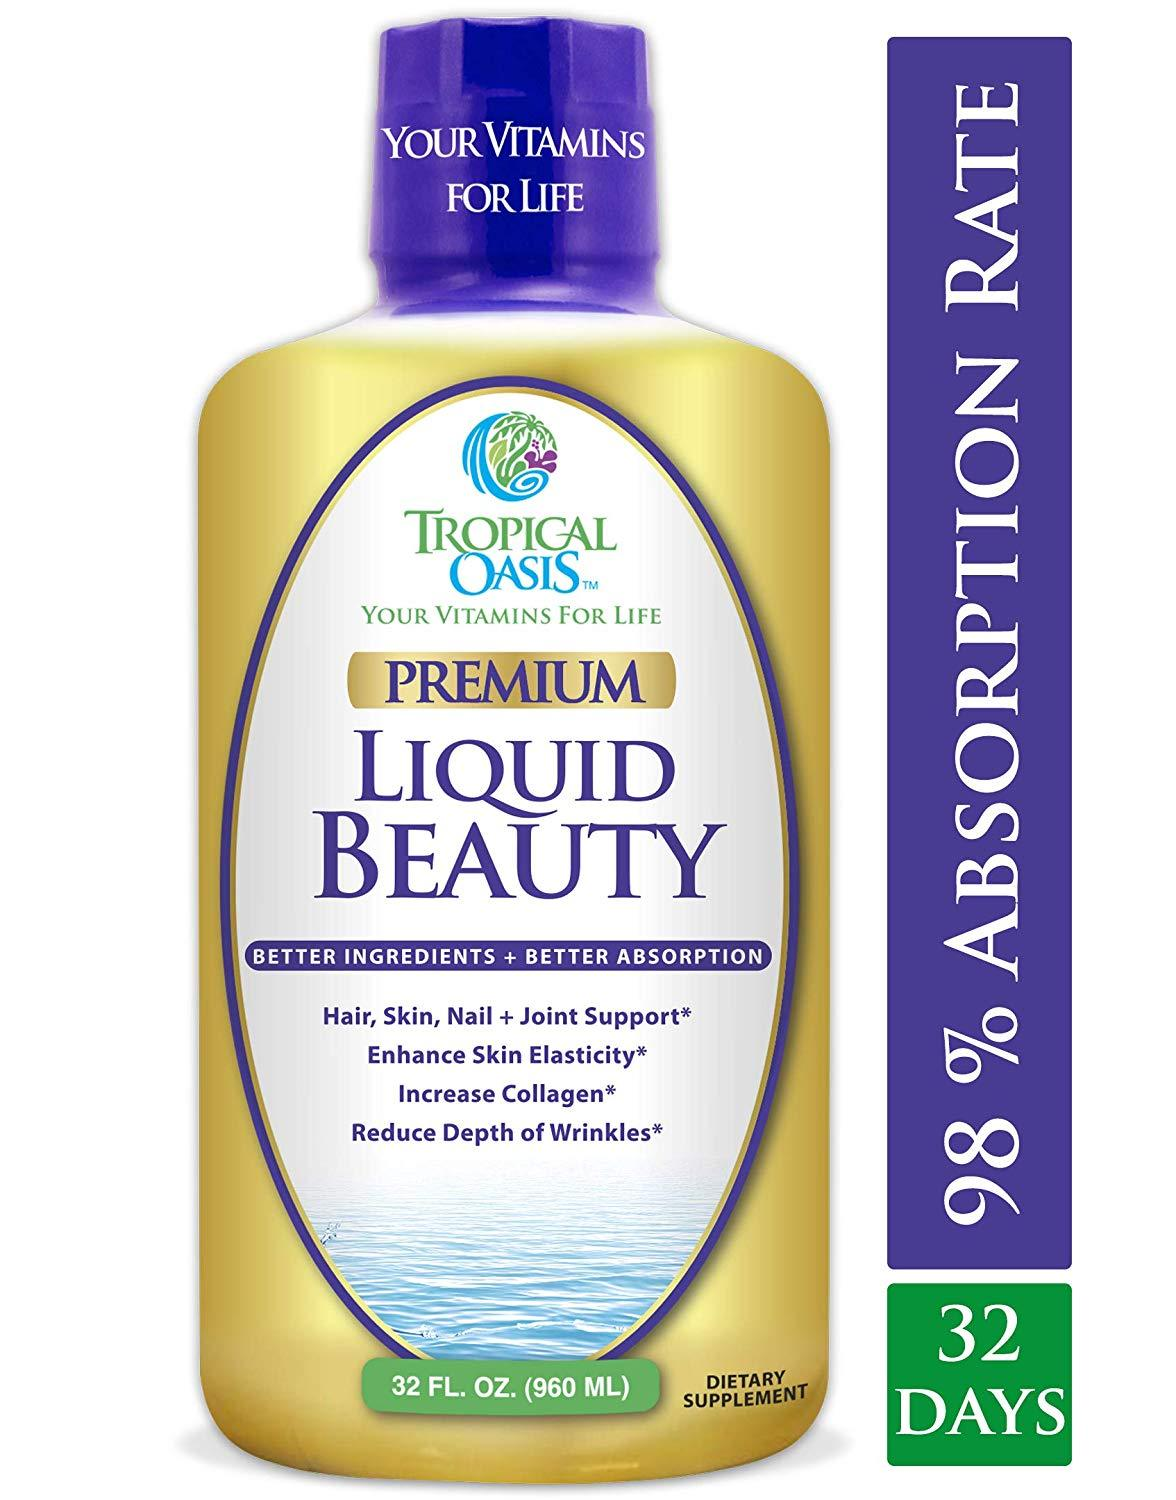 Premium Liquid Beauty Supplement, 32 servings